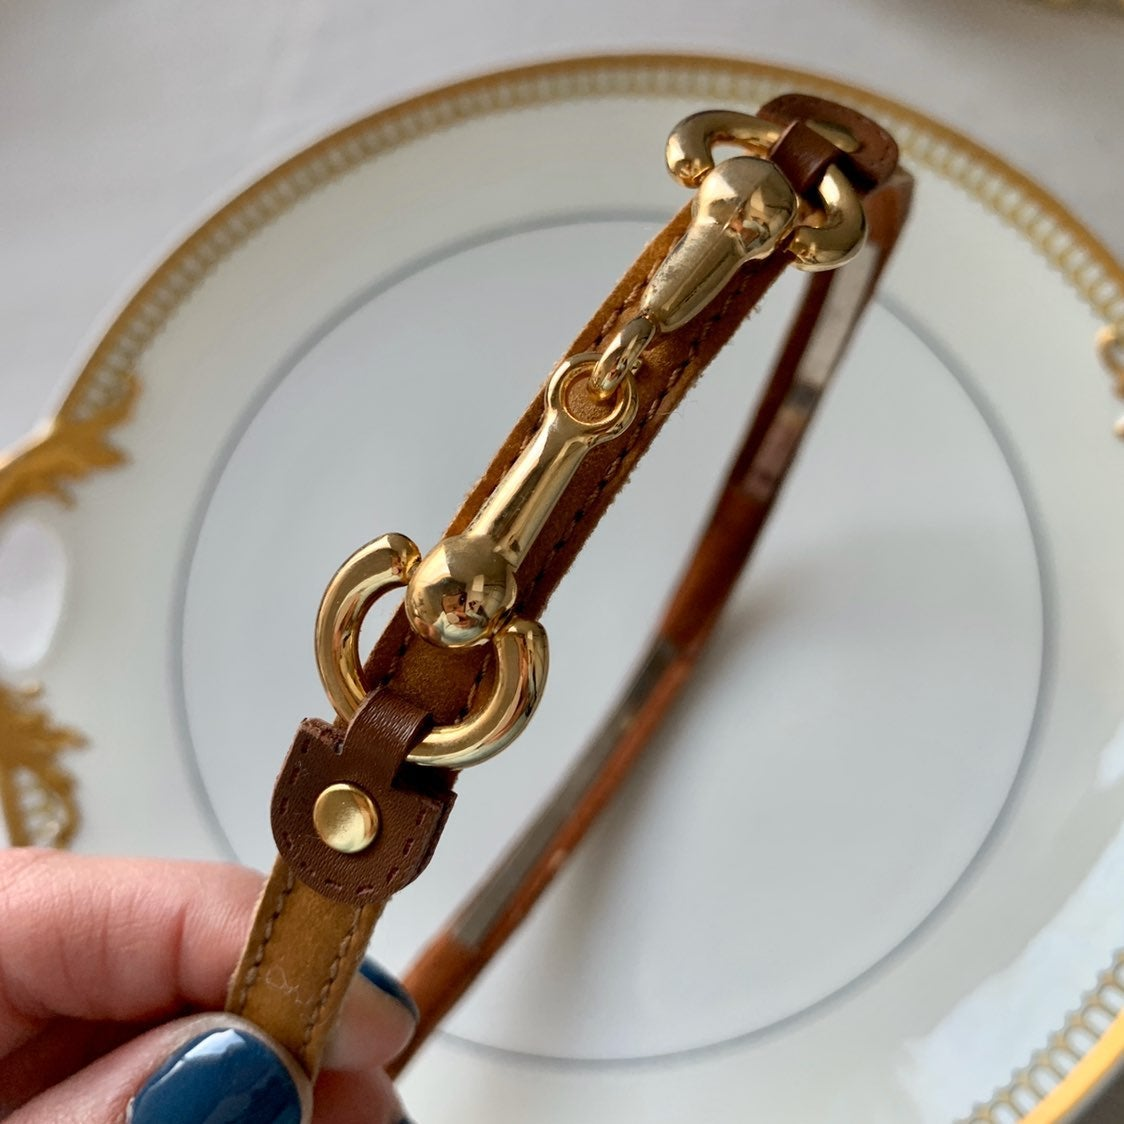 Brown and gold horse bit Gucci headband